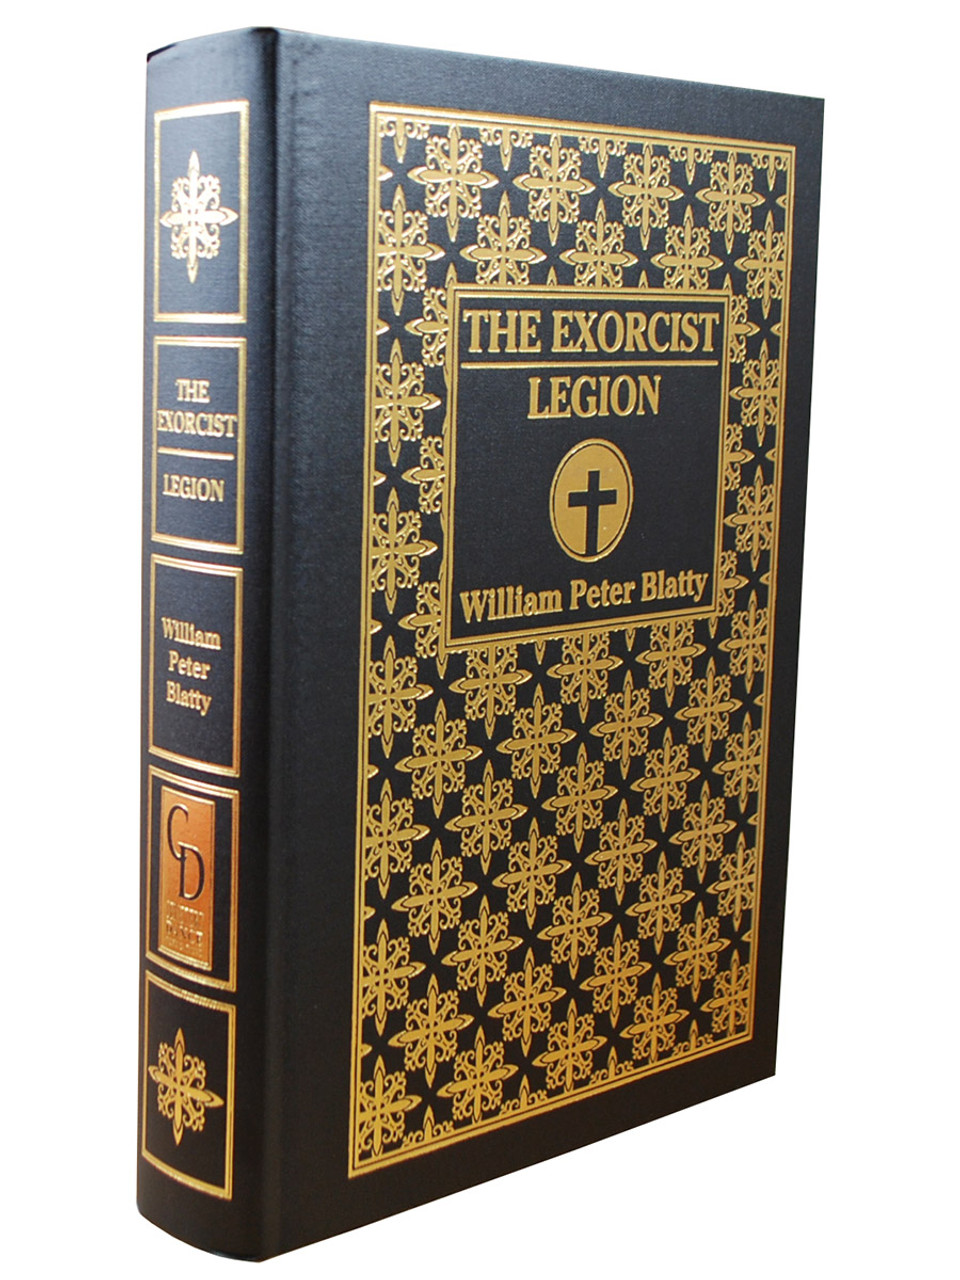 """William Peter Blatty """"The Exorcist - Legion"""" Signed First Limited Edition Printing No. 235 of 750 Slipcased [Very Fine]"""